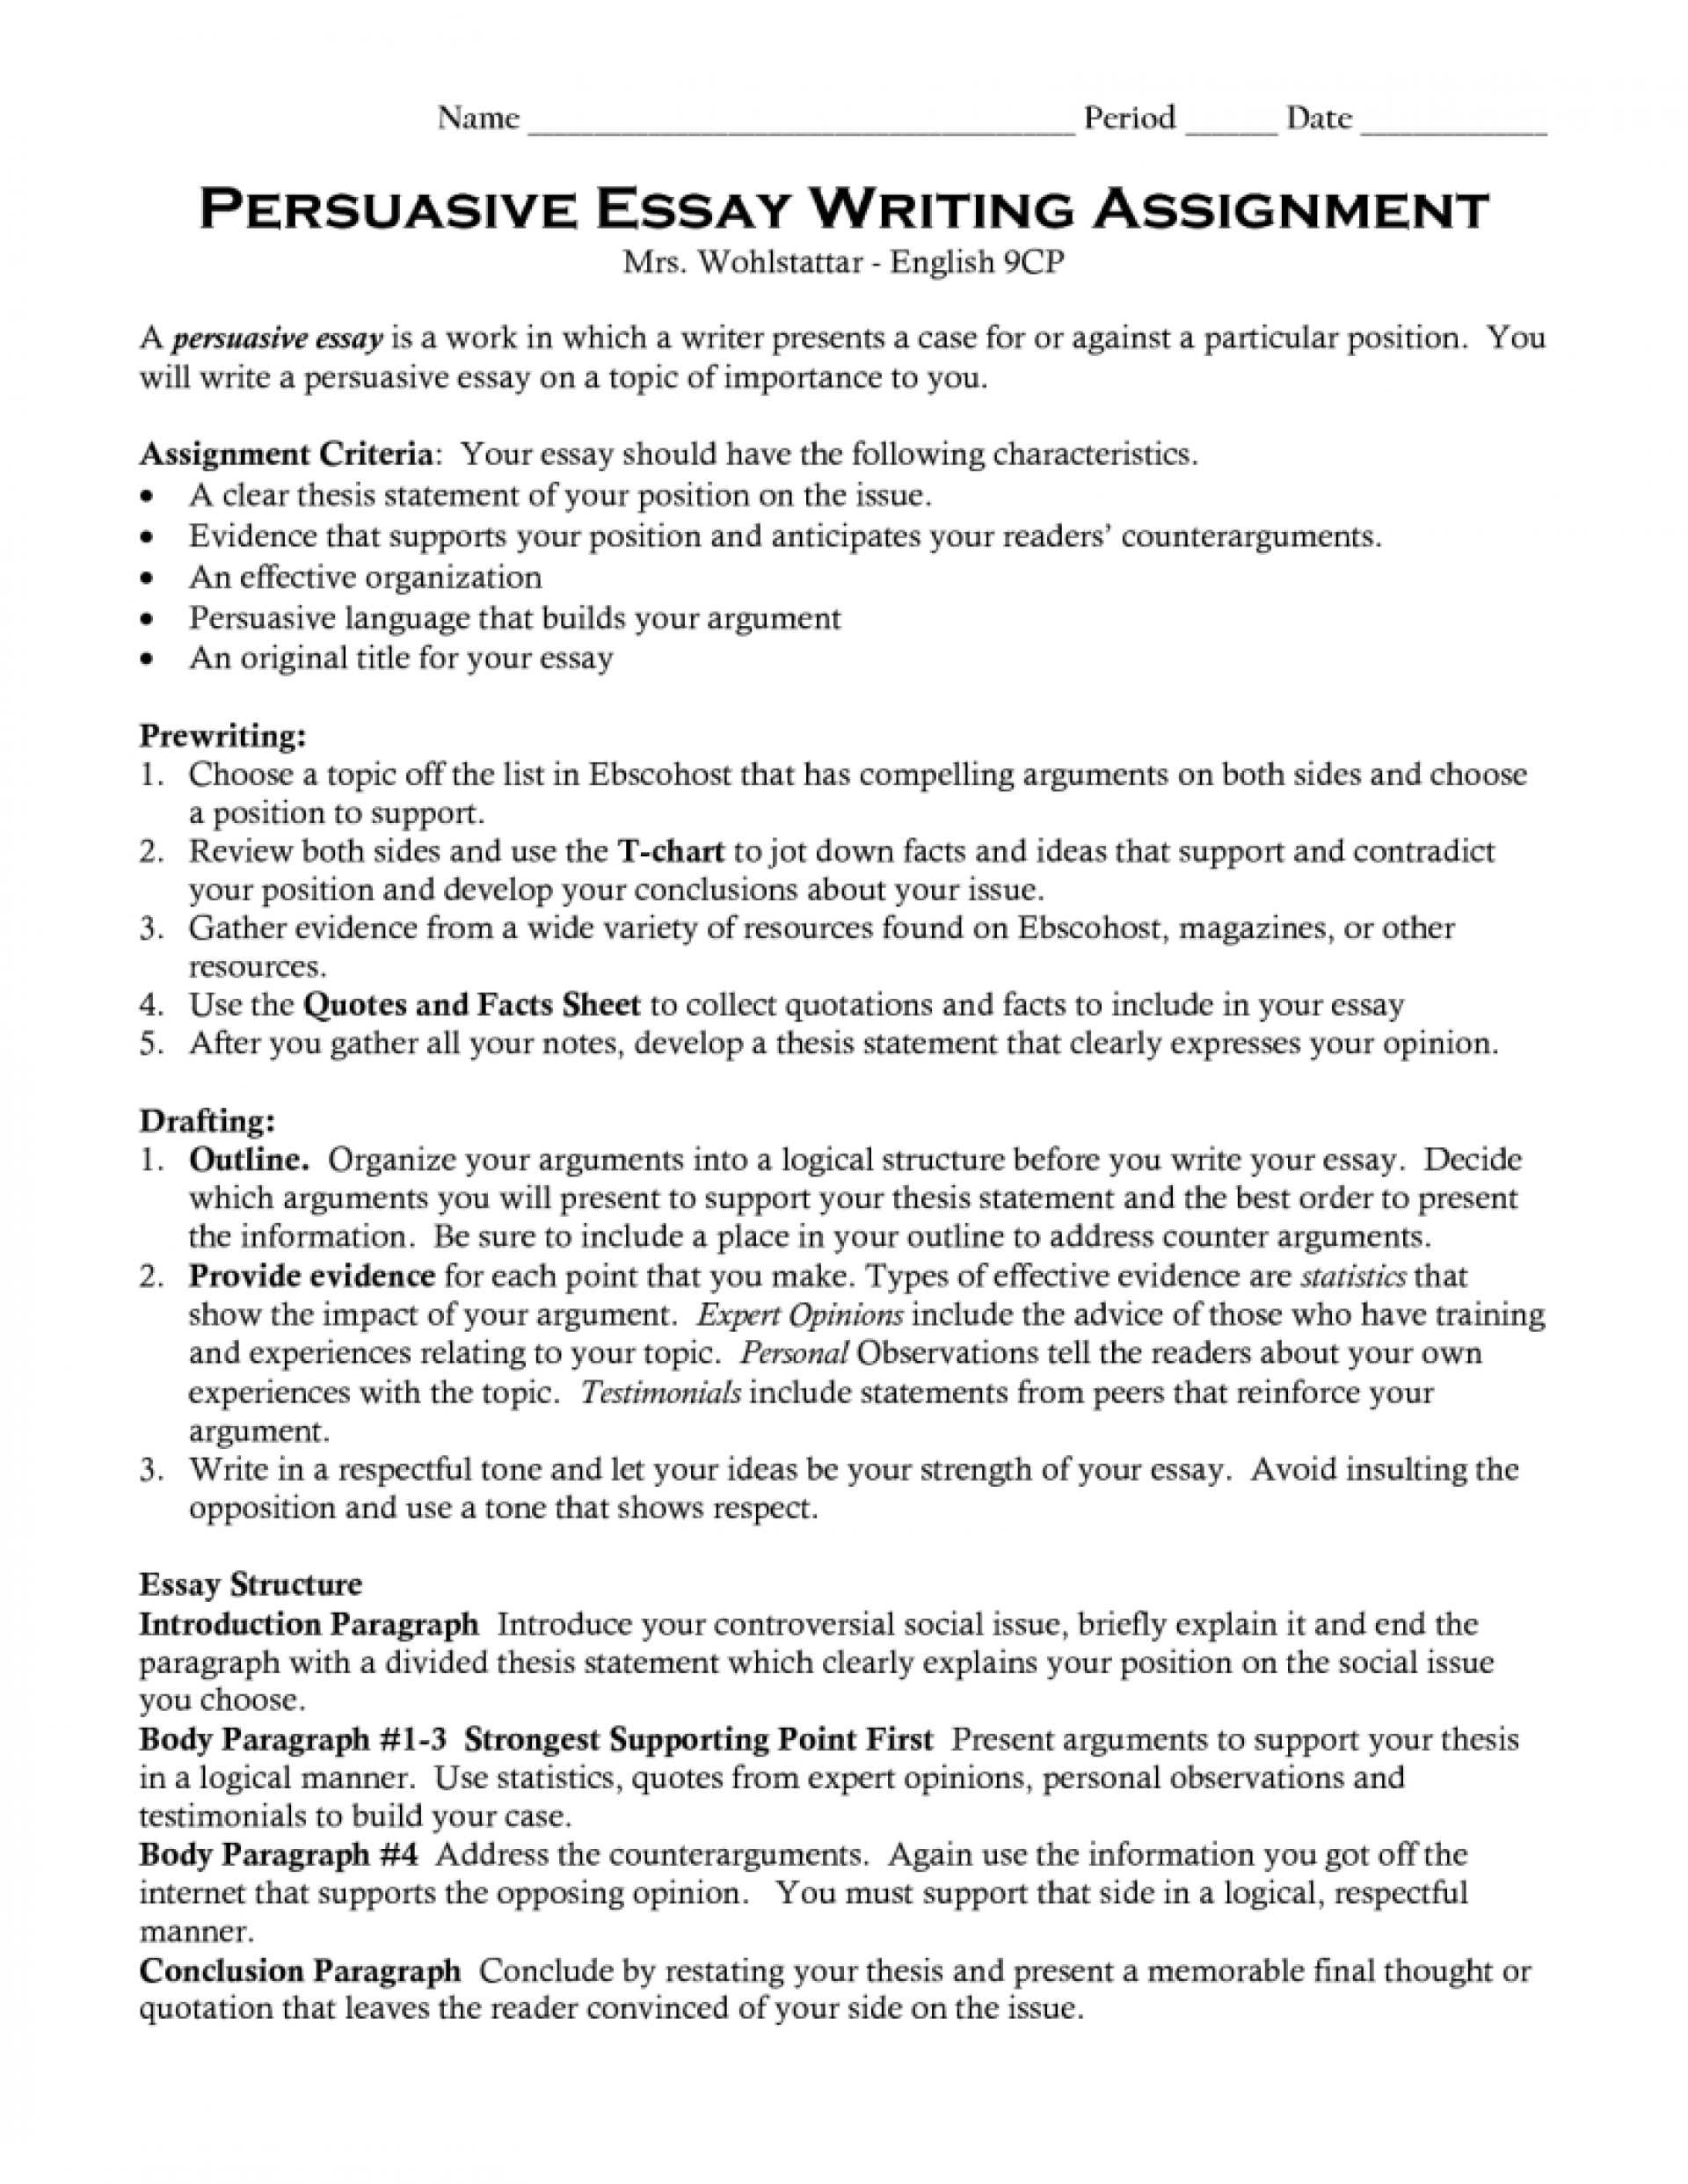 018 Essay Example B510b2e5336b8ee7c1b1cb8e3d7d7991resize8062c1043ssl1 Animal Stunning Cruelty Abuse Argumentative Topics Paper Outline Research 1920